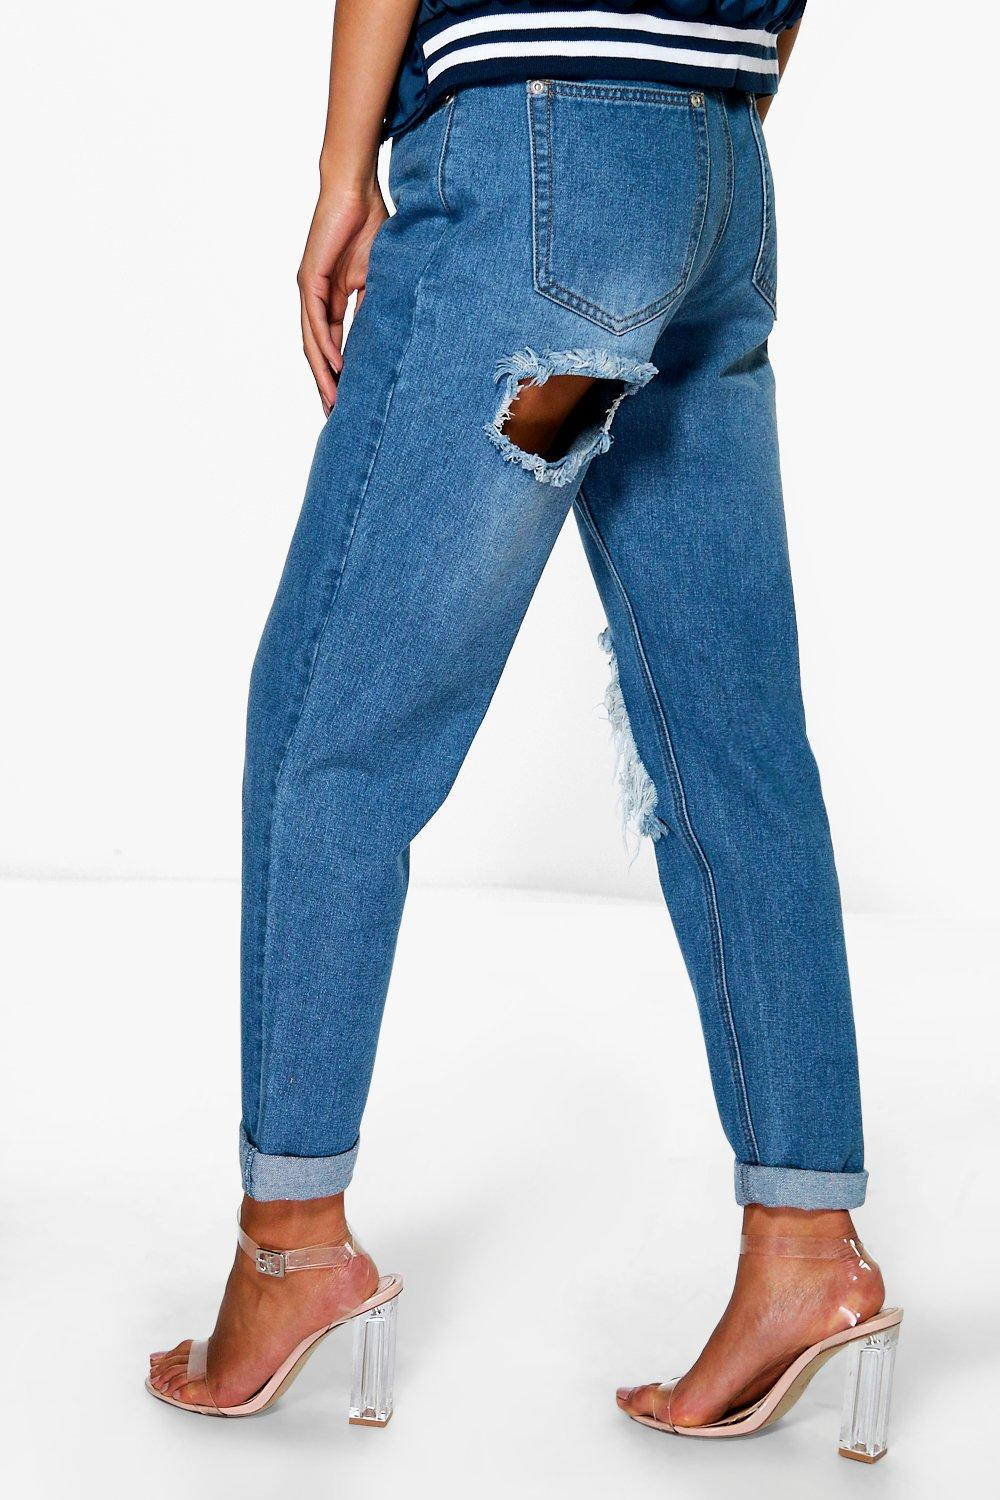 boohoo womens hatty high rise cheeky rip boyfriend jeans in blue size 8 ebay. Black Bedroom Furniture Sets. Home Design Ideas